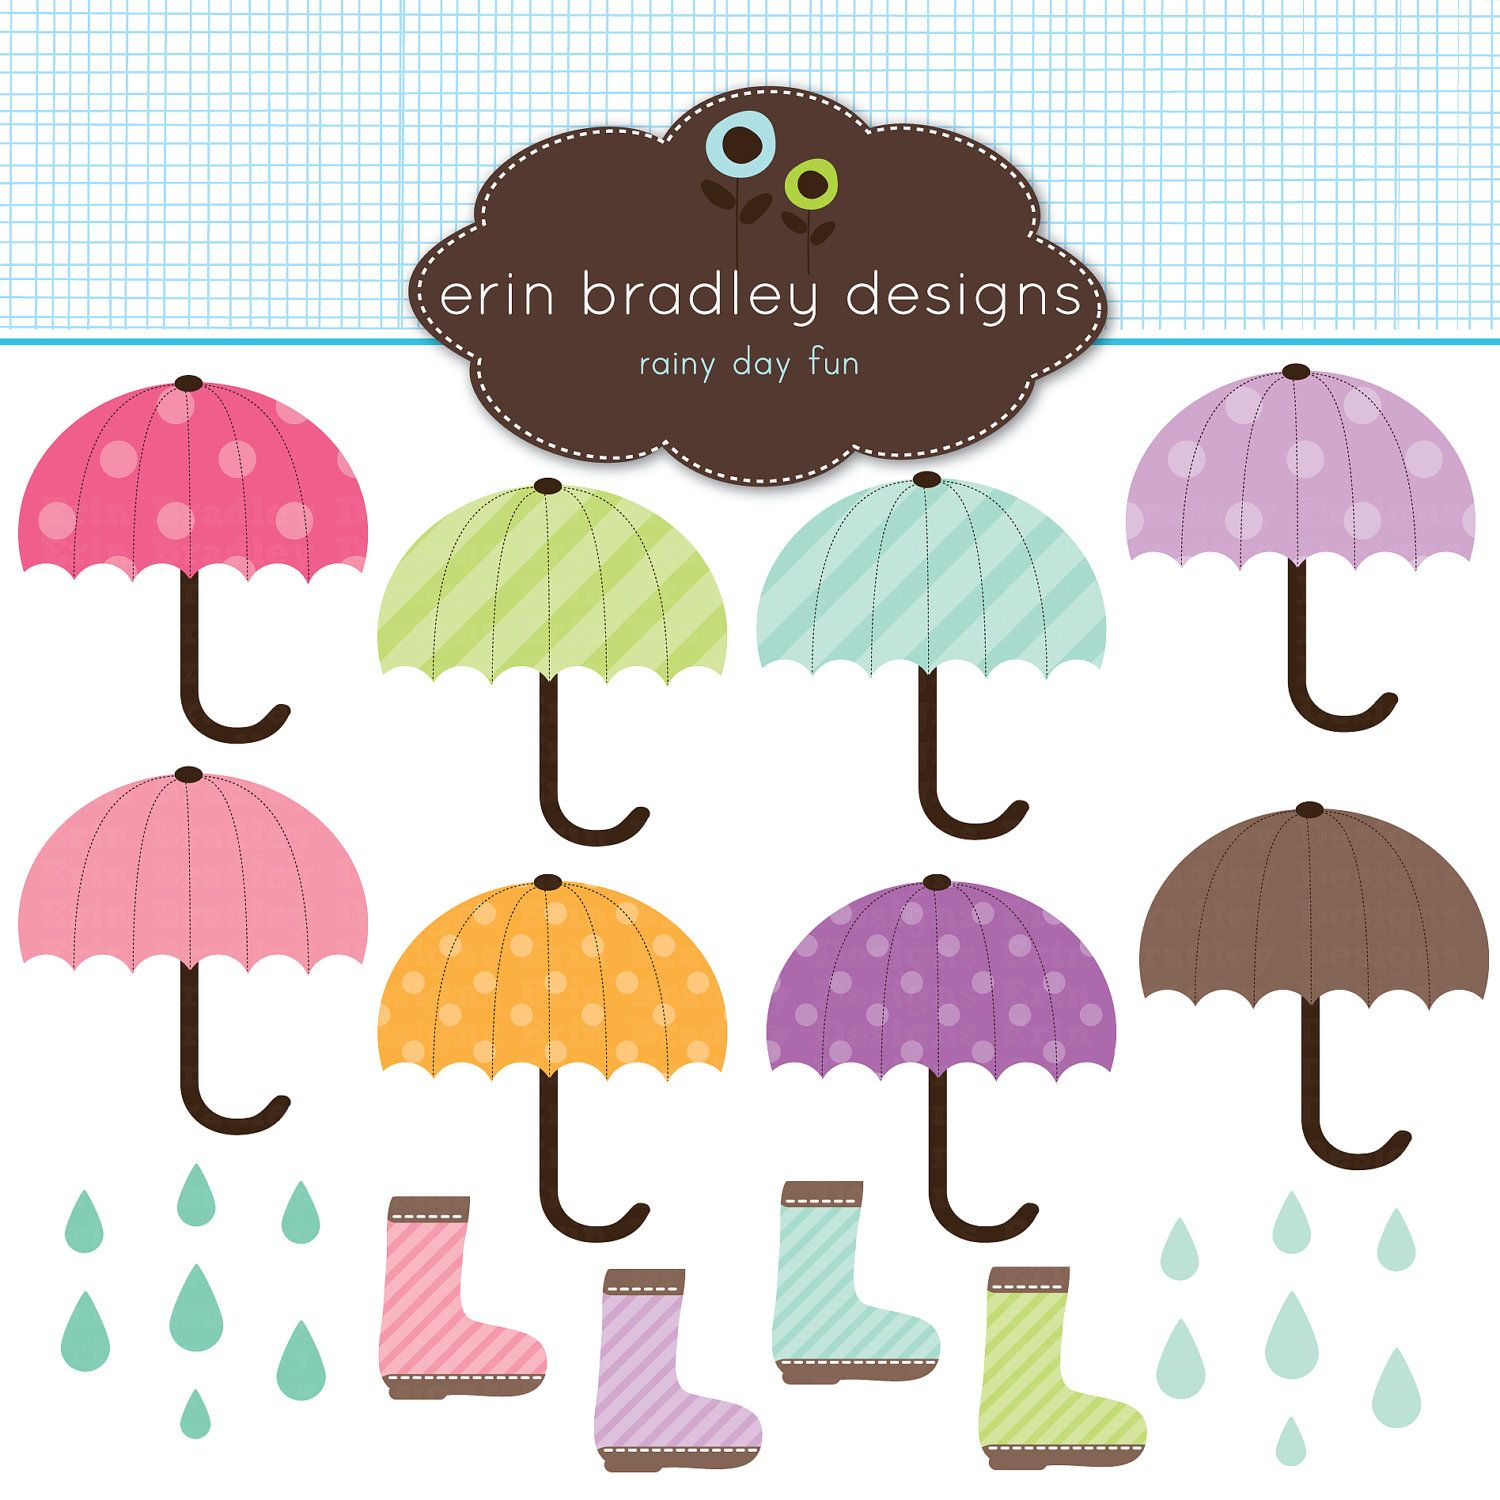 Umbrella clipart clip art. For personal commercial use